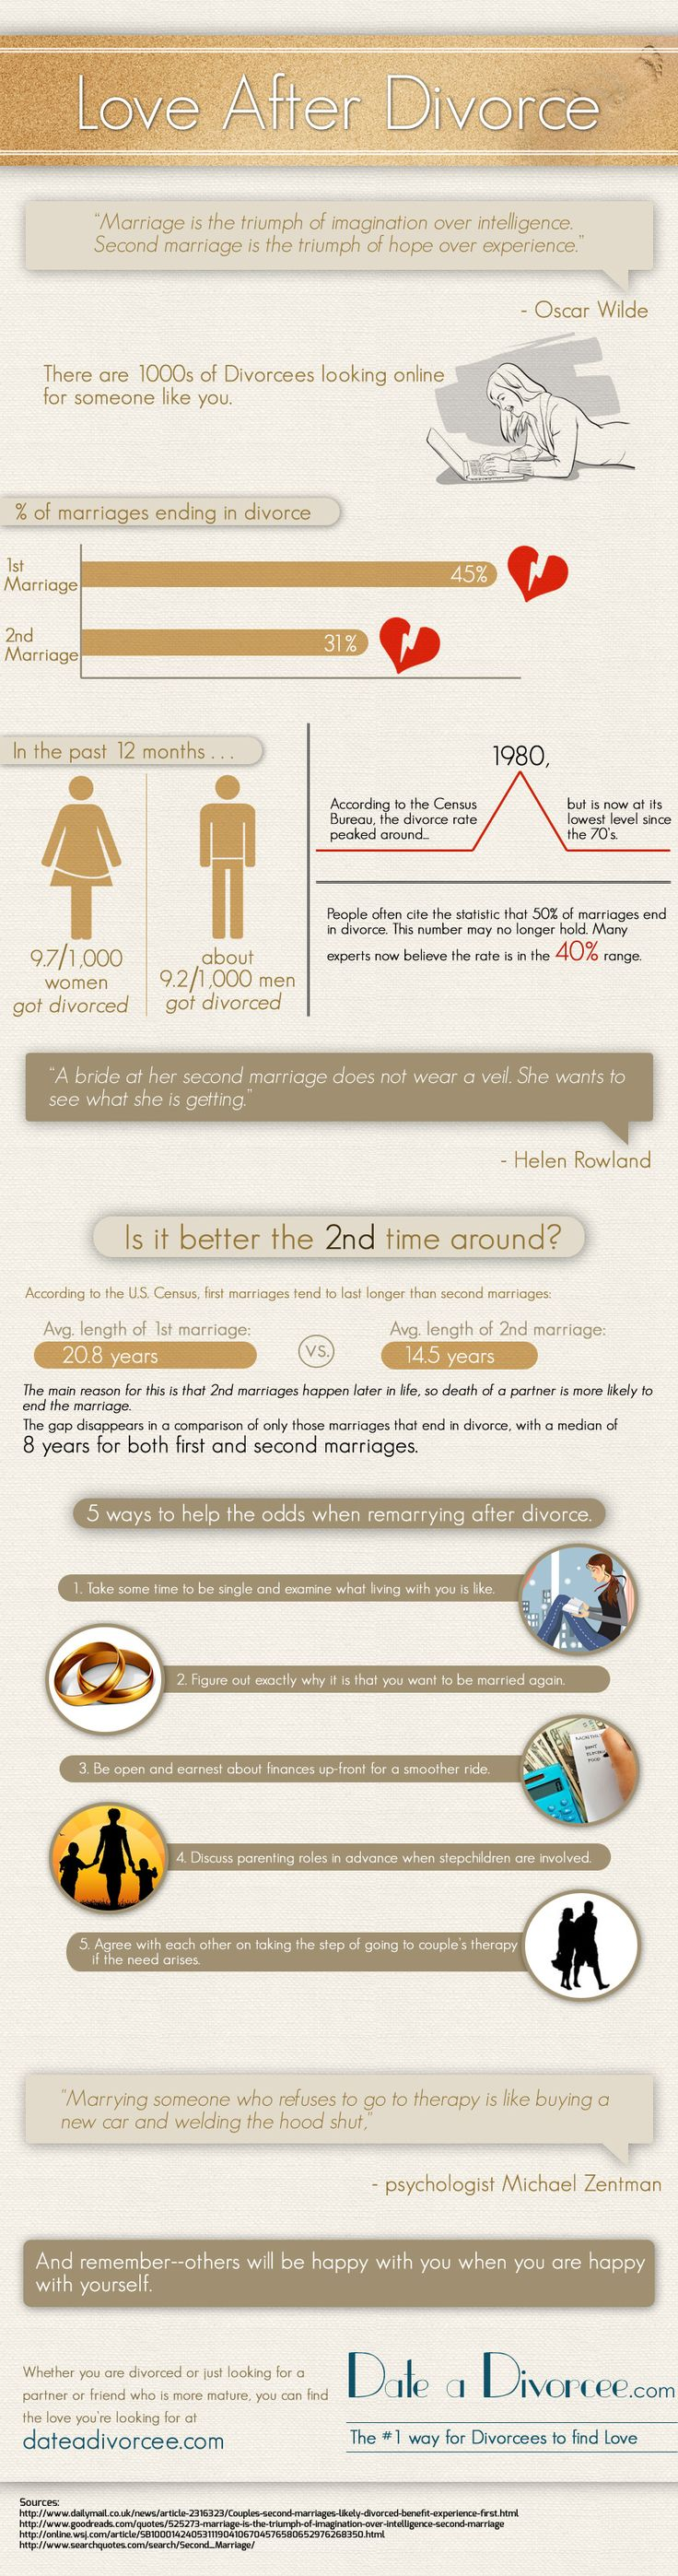 http://dateadivorcee.com/infograph/  Love after divorce Infographic with some surprising facts about love after divorce.